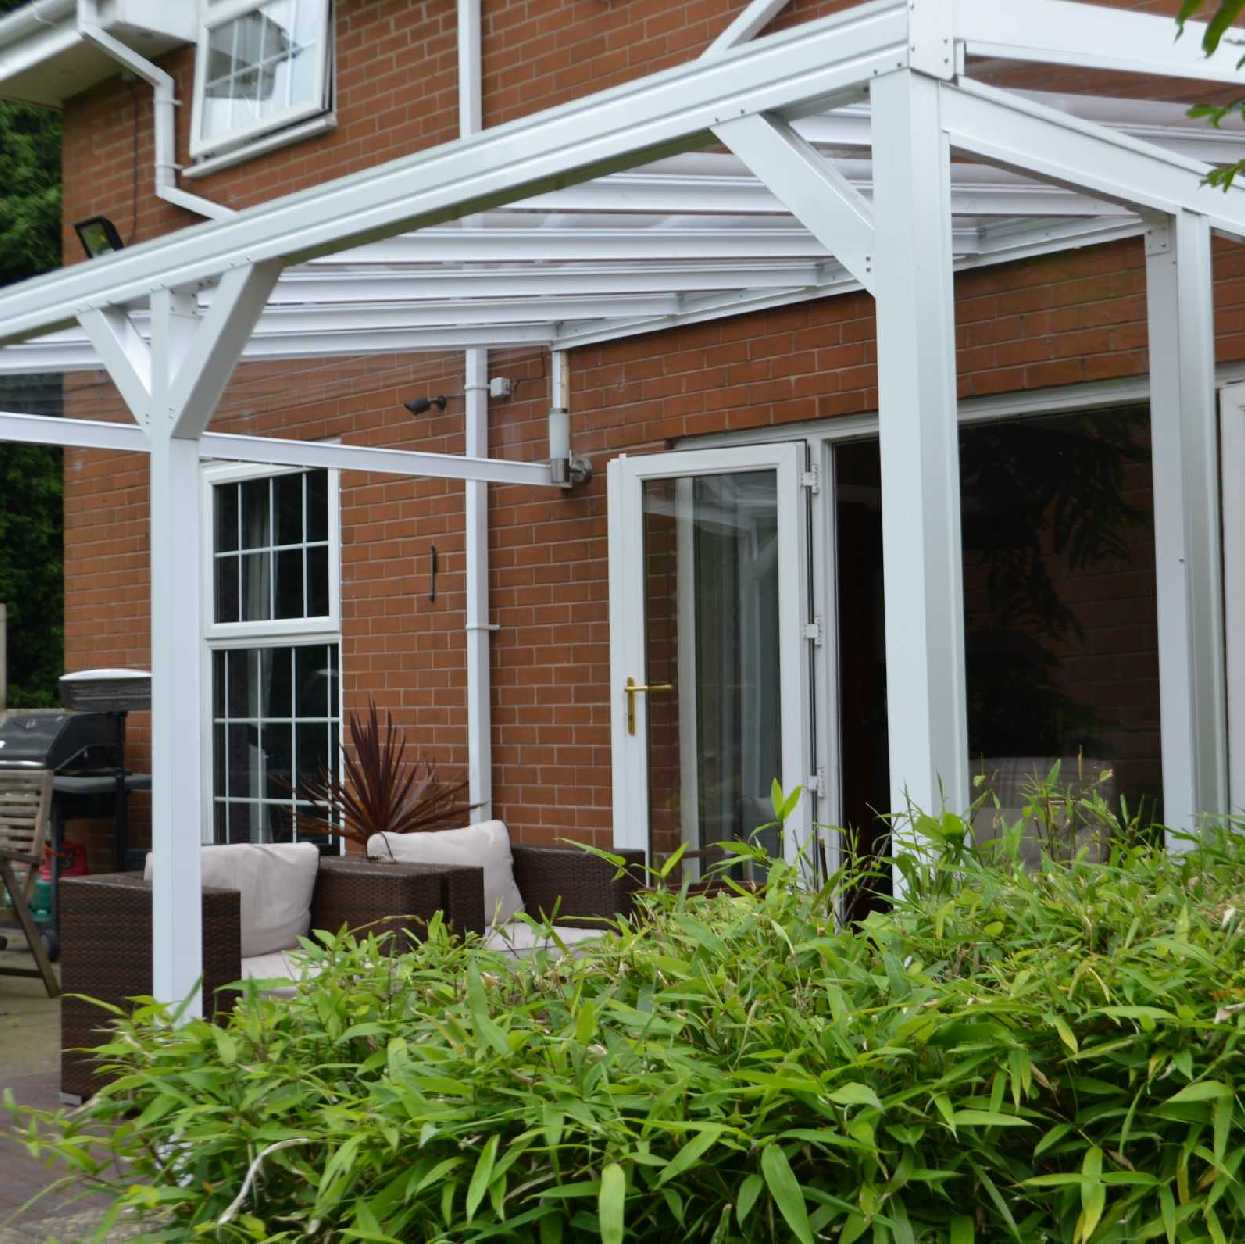 Omega Smart White Lean-To Canopy with 6mm Glass Clear Plate Polycarbonate Glazing - 8.4m (W) x 3.0m (P), (4) Supporting Posts from Omega Build